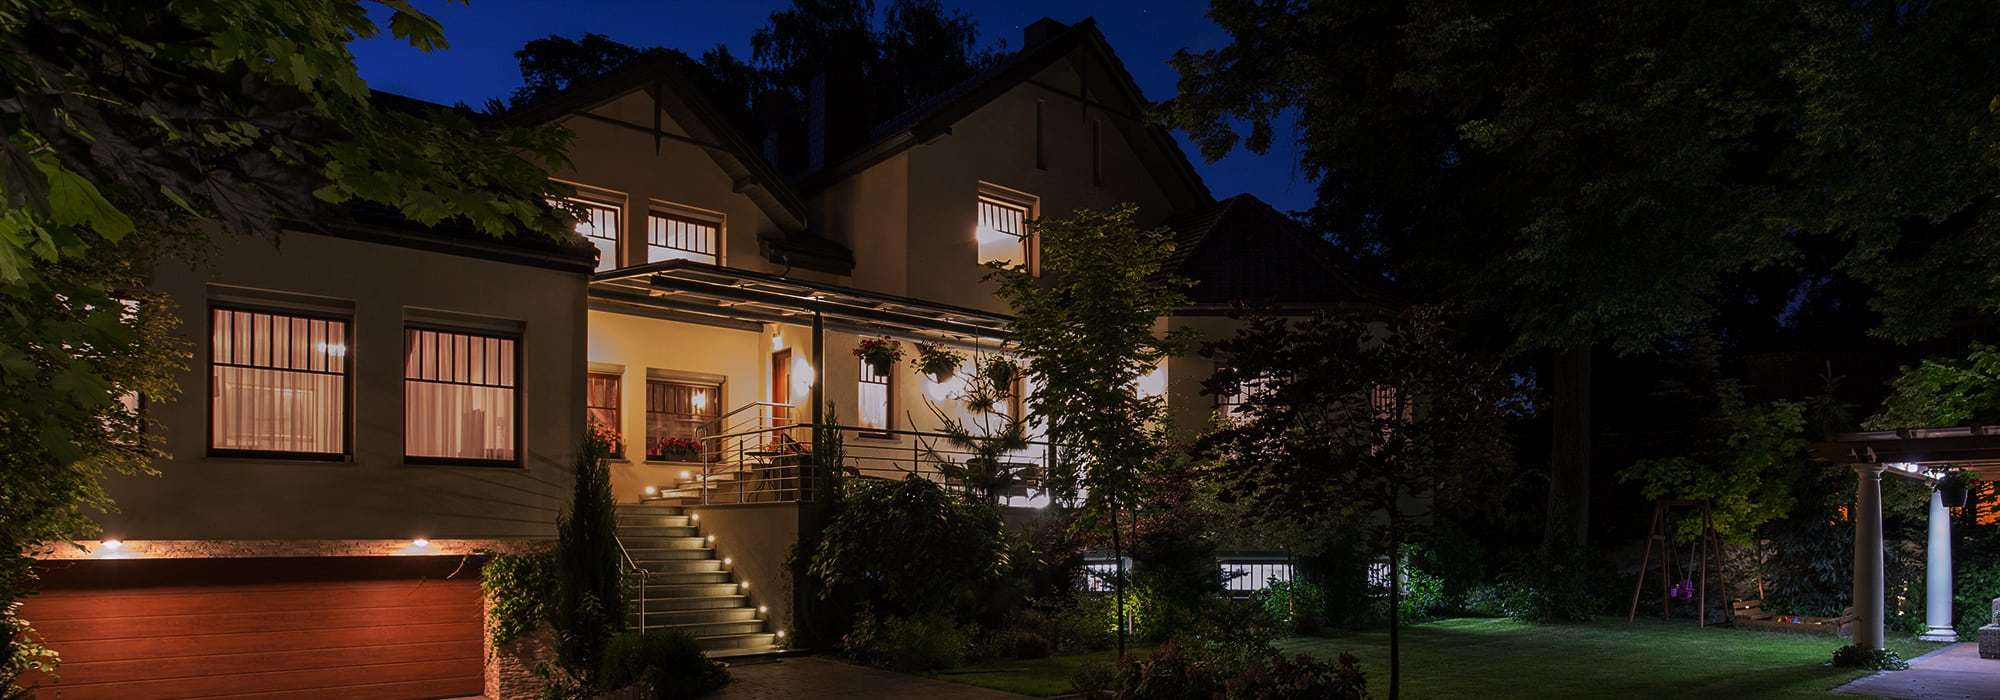 family home lit up at night